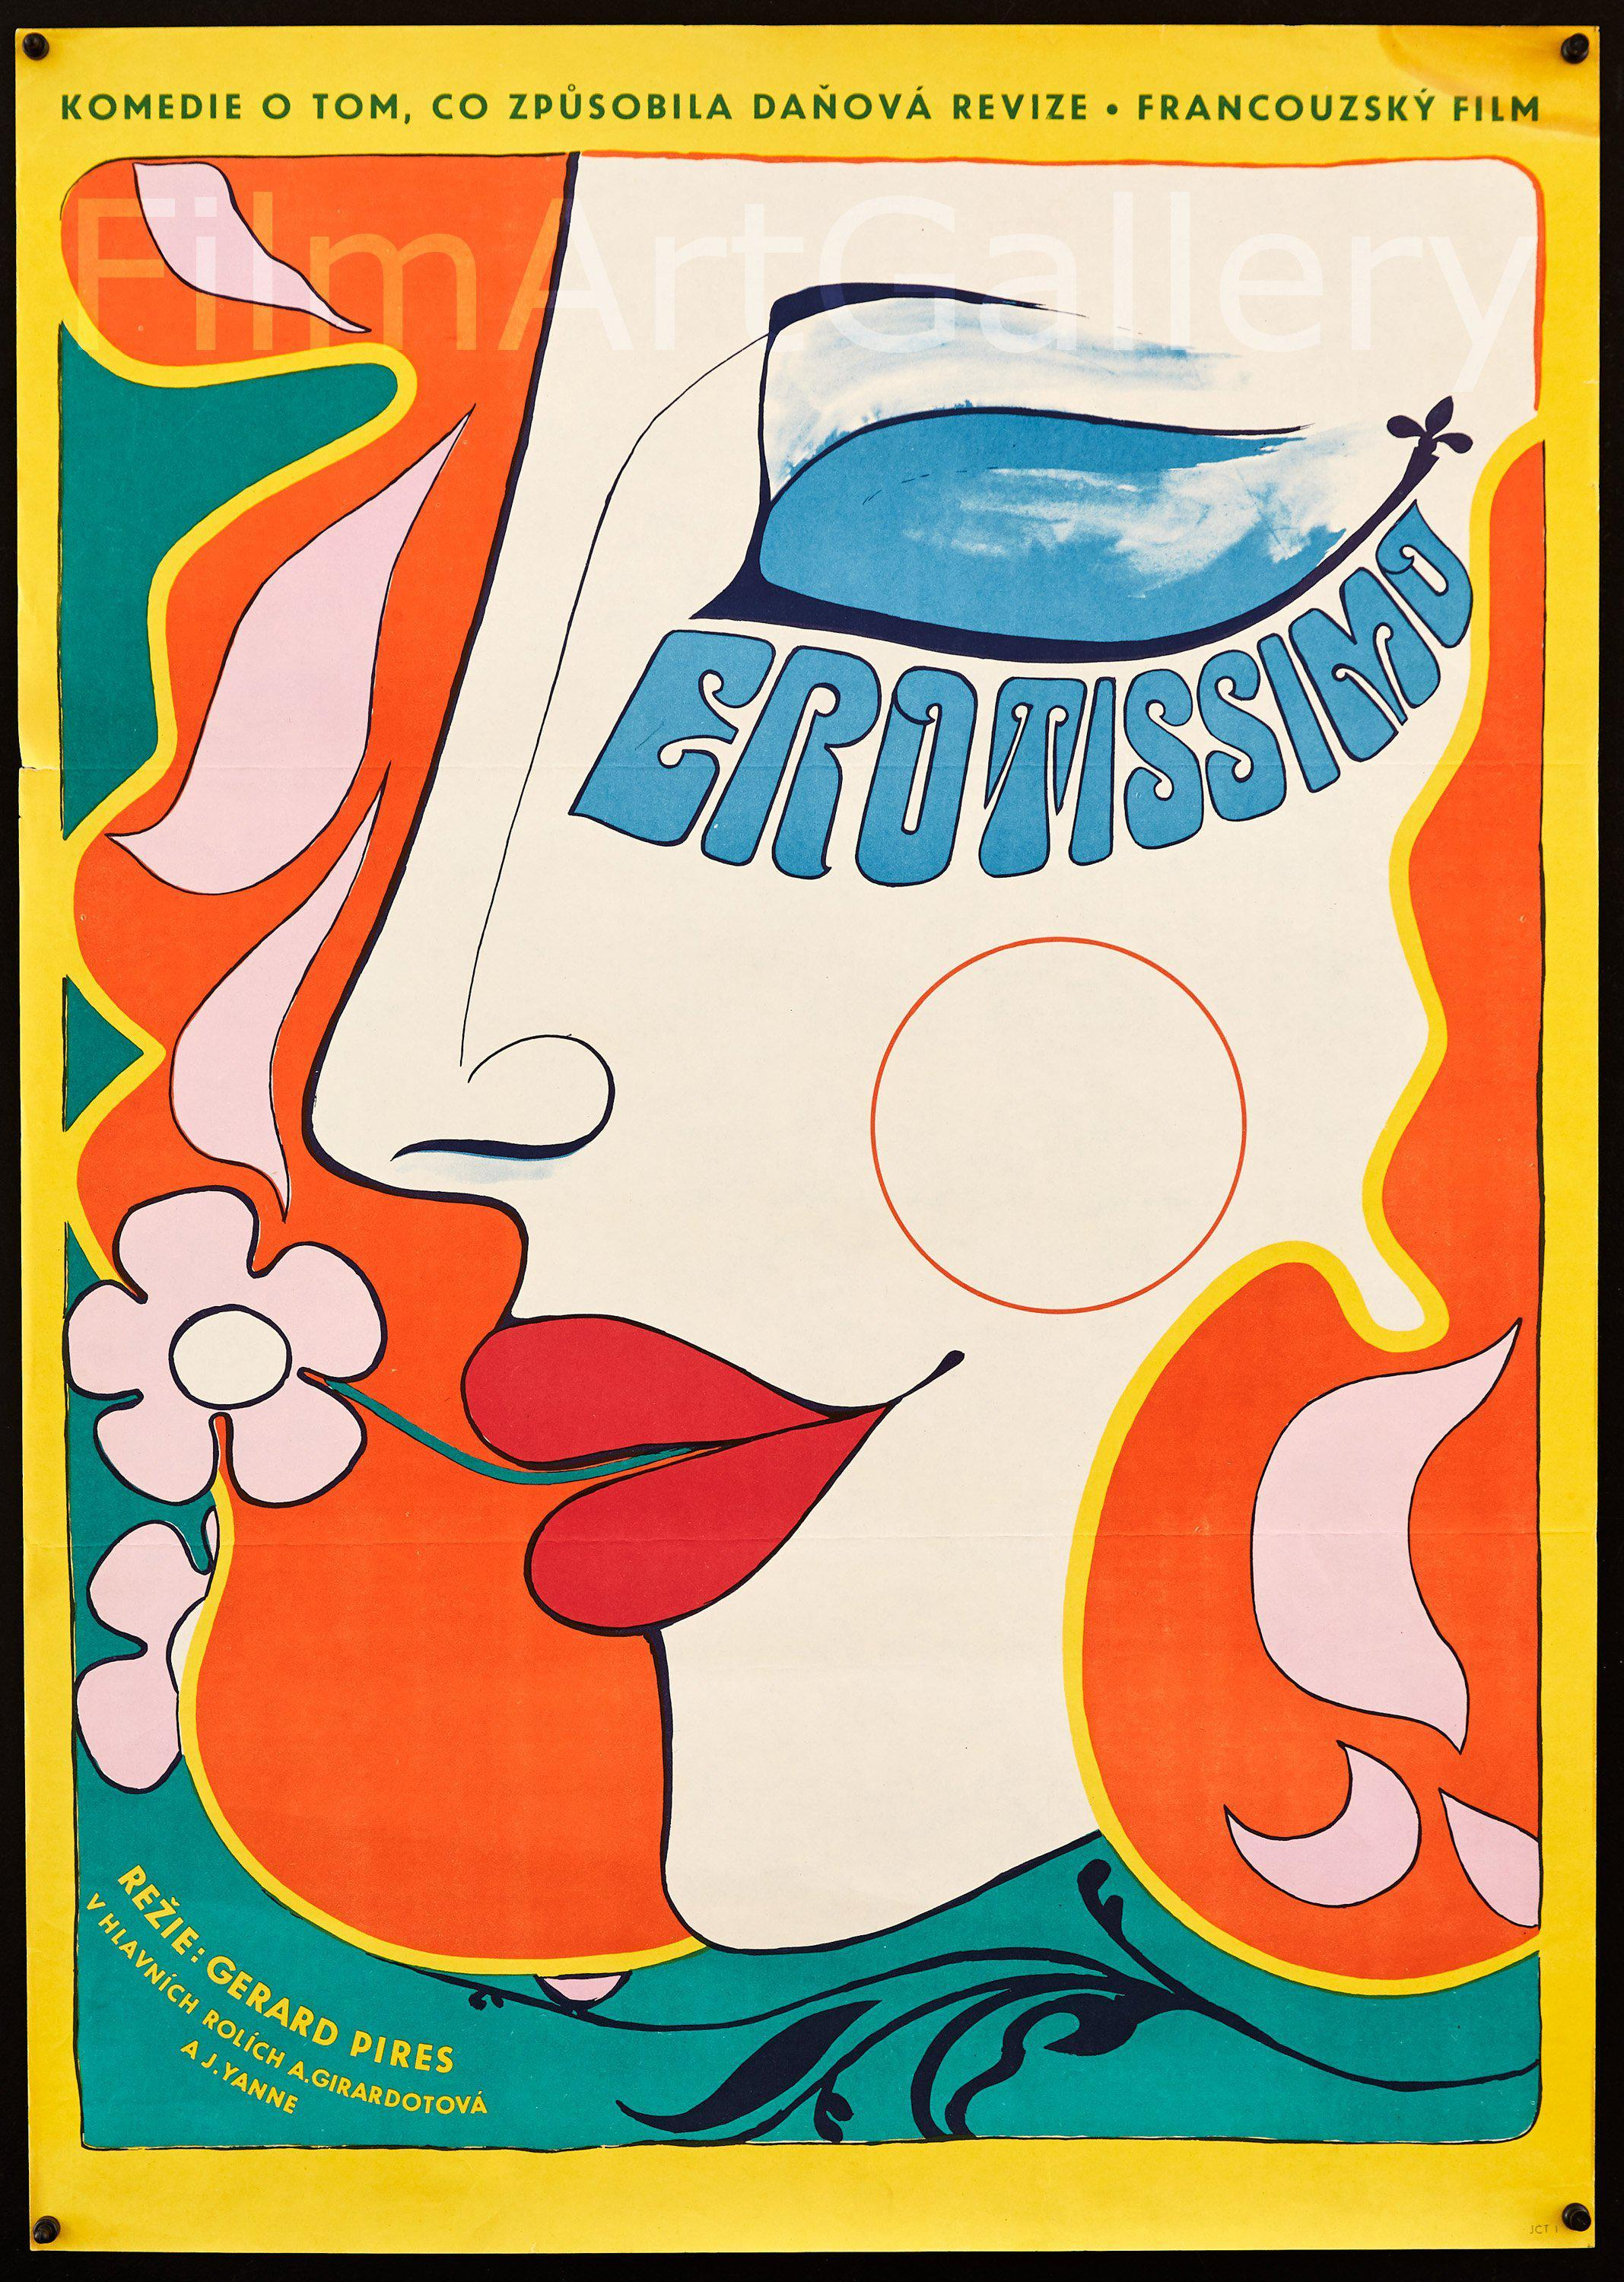 Erotissimo Czech (23x33) Original Vintage Movie Poster